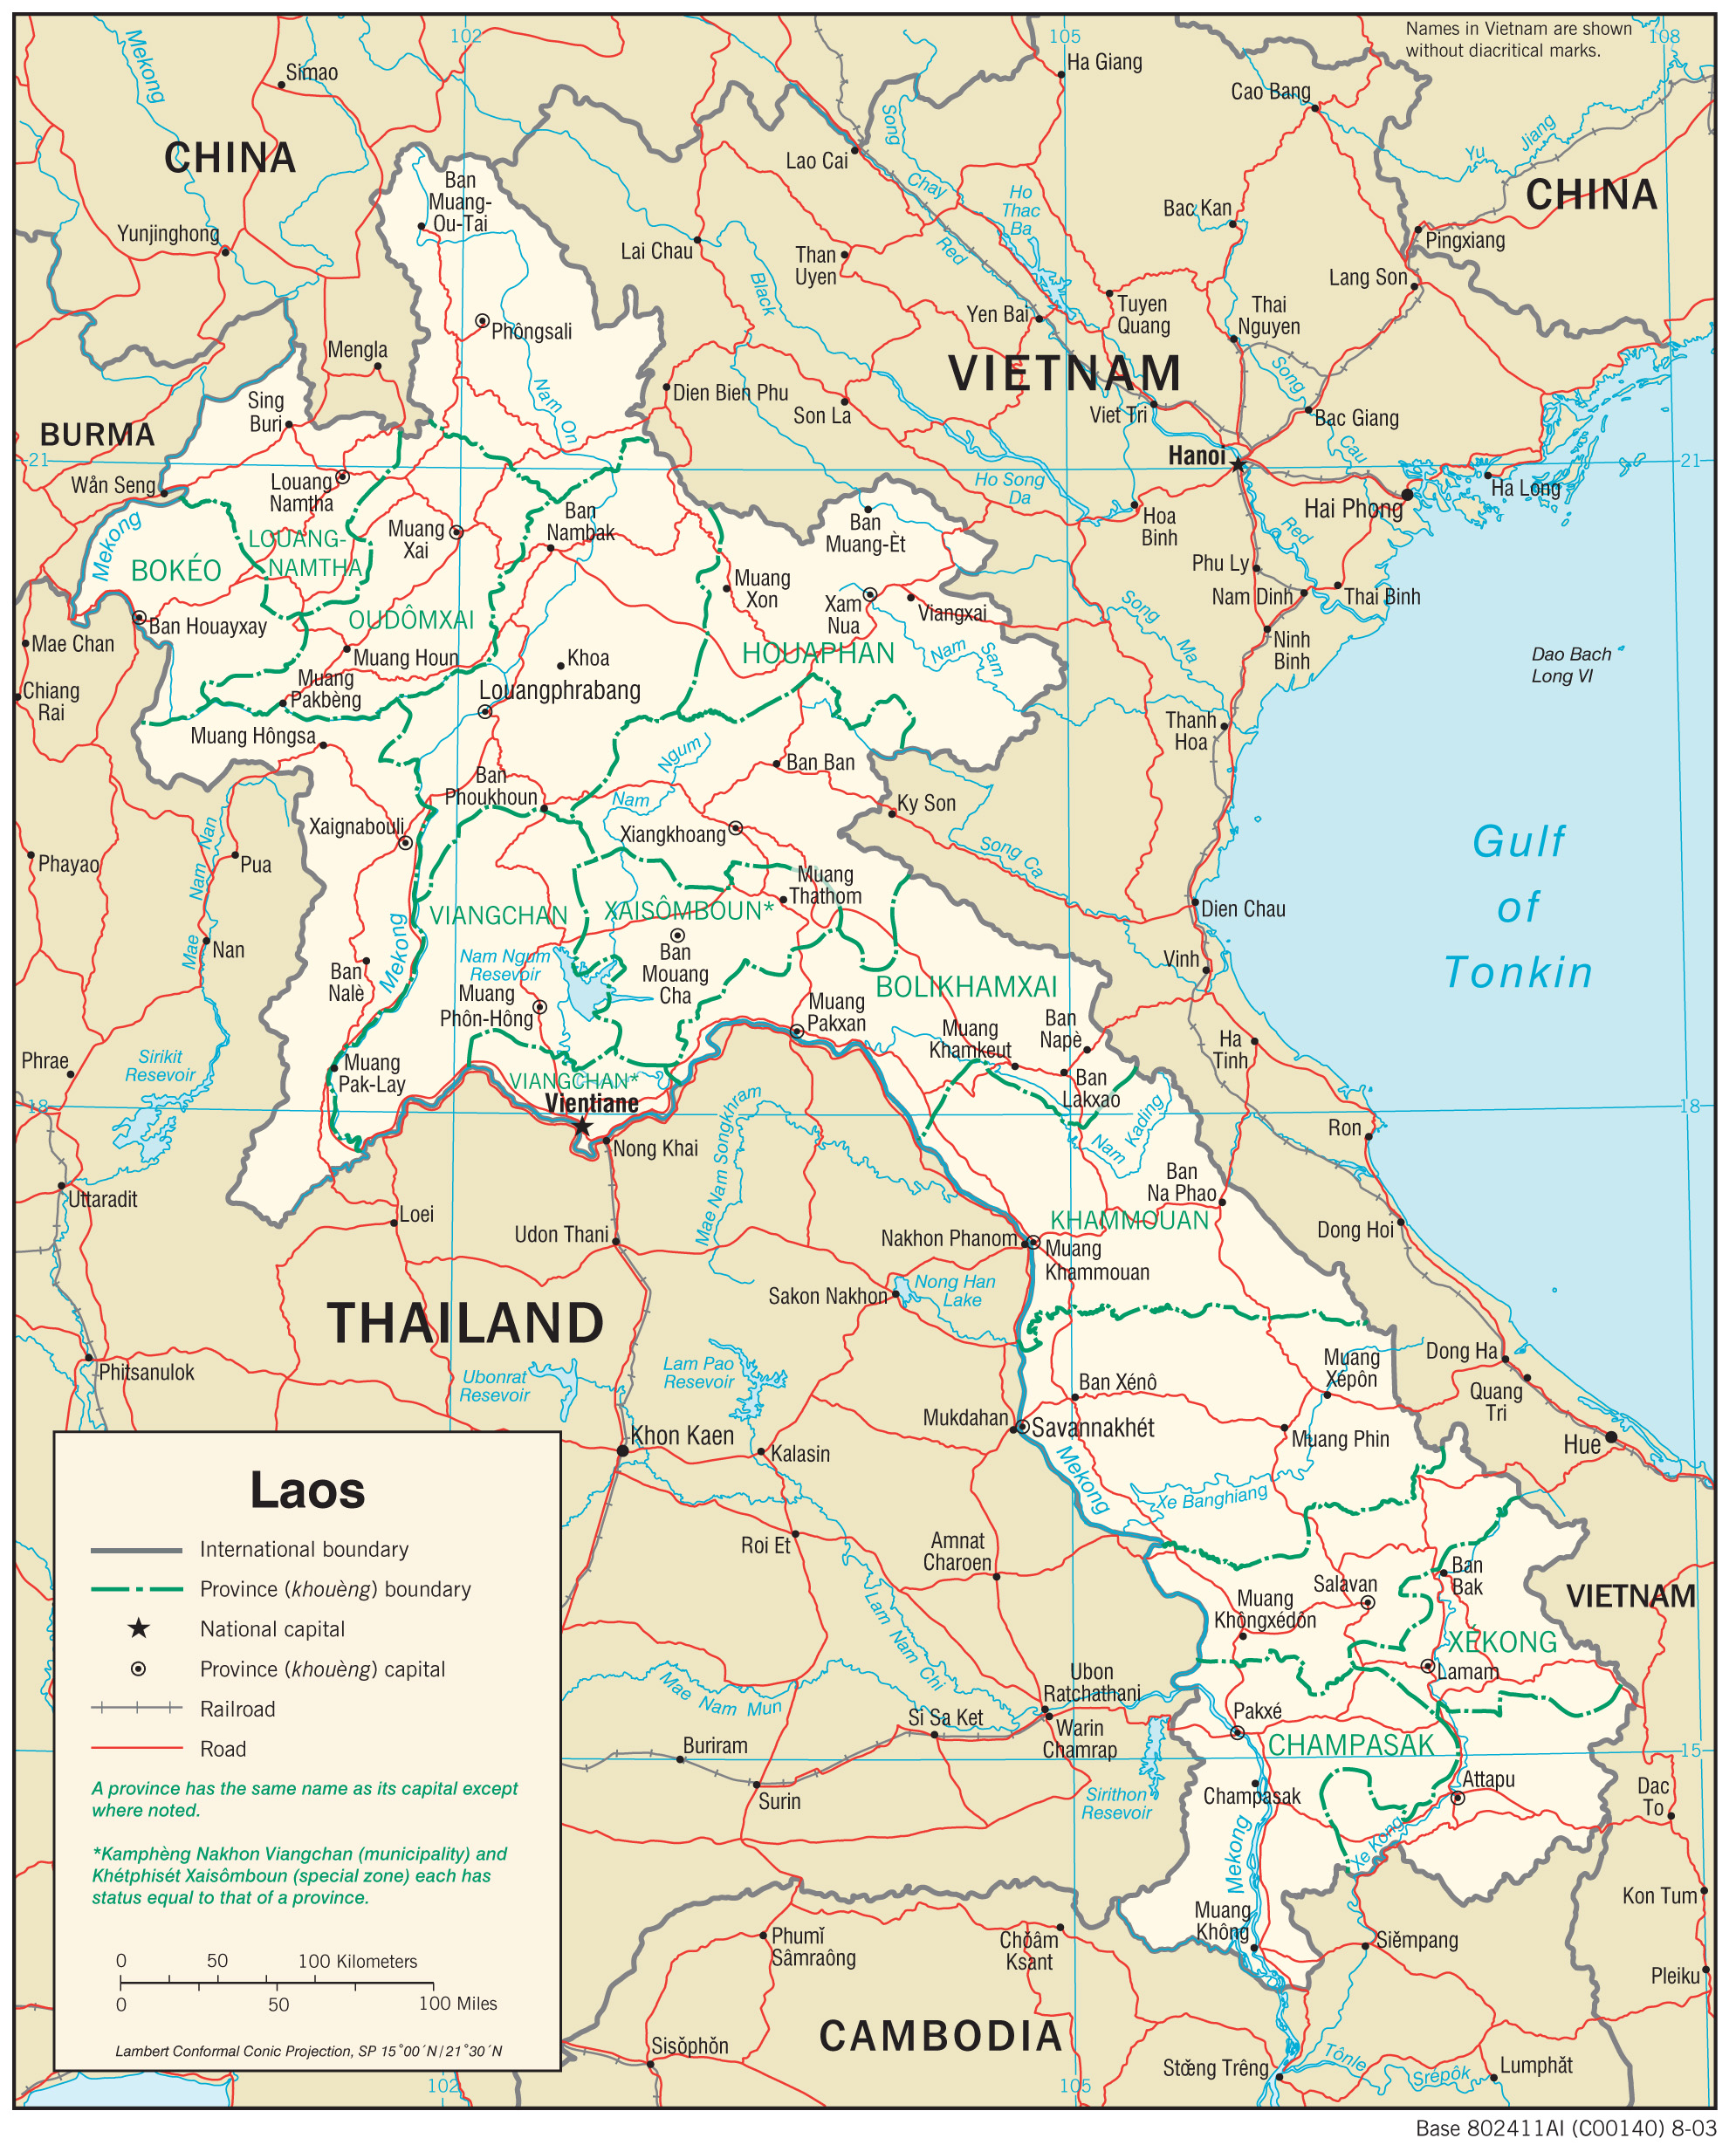 Laos Maps PerryCastañeda Map Collection UT Library Online - World map images with country names pdf